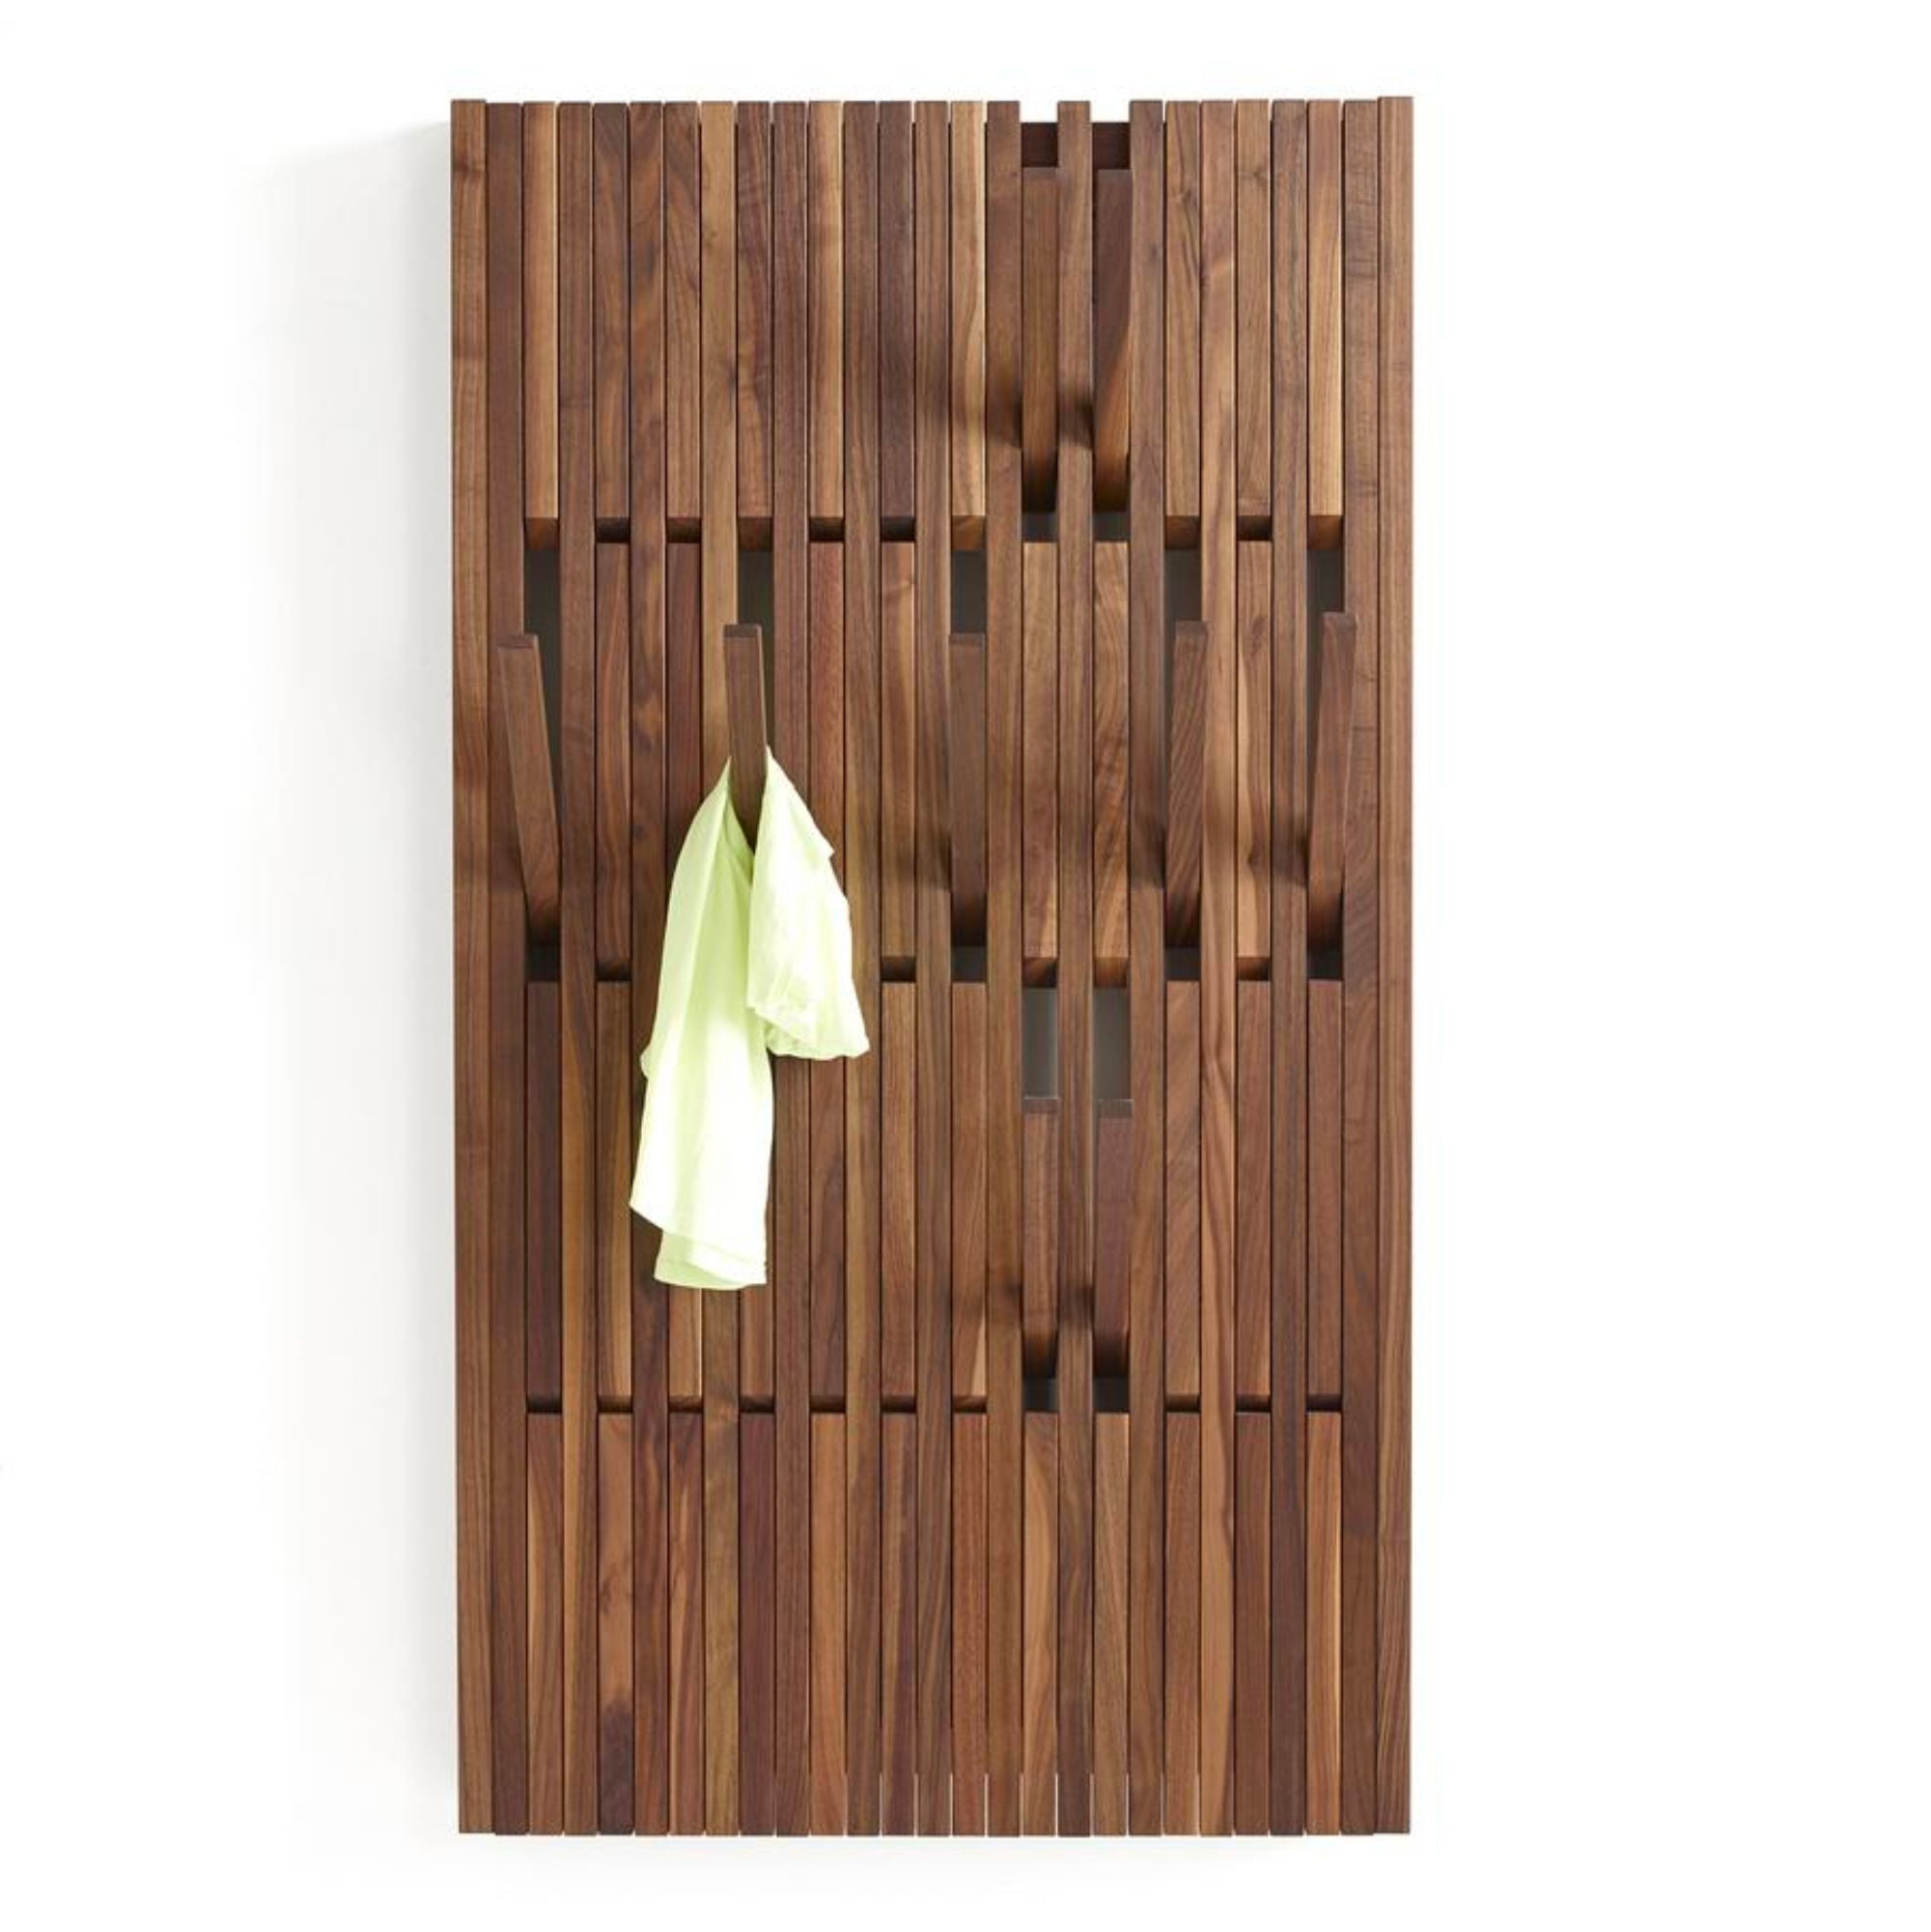 Peruse Piano hanger panel, Large - Walnut natural oiled